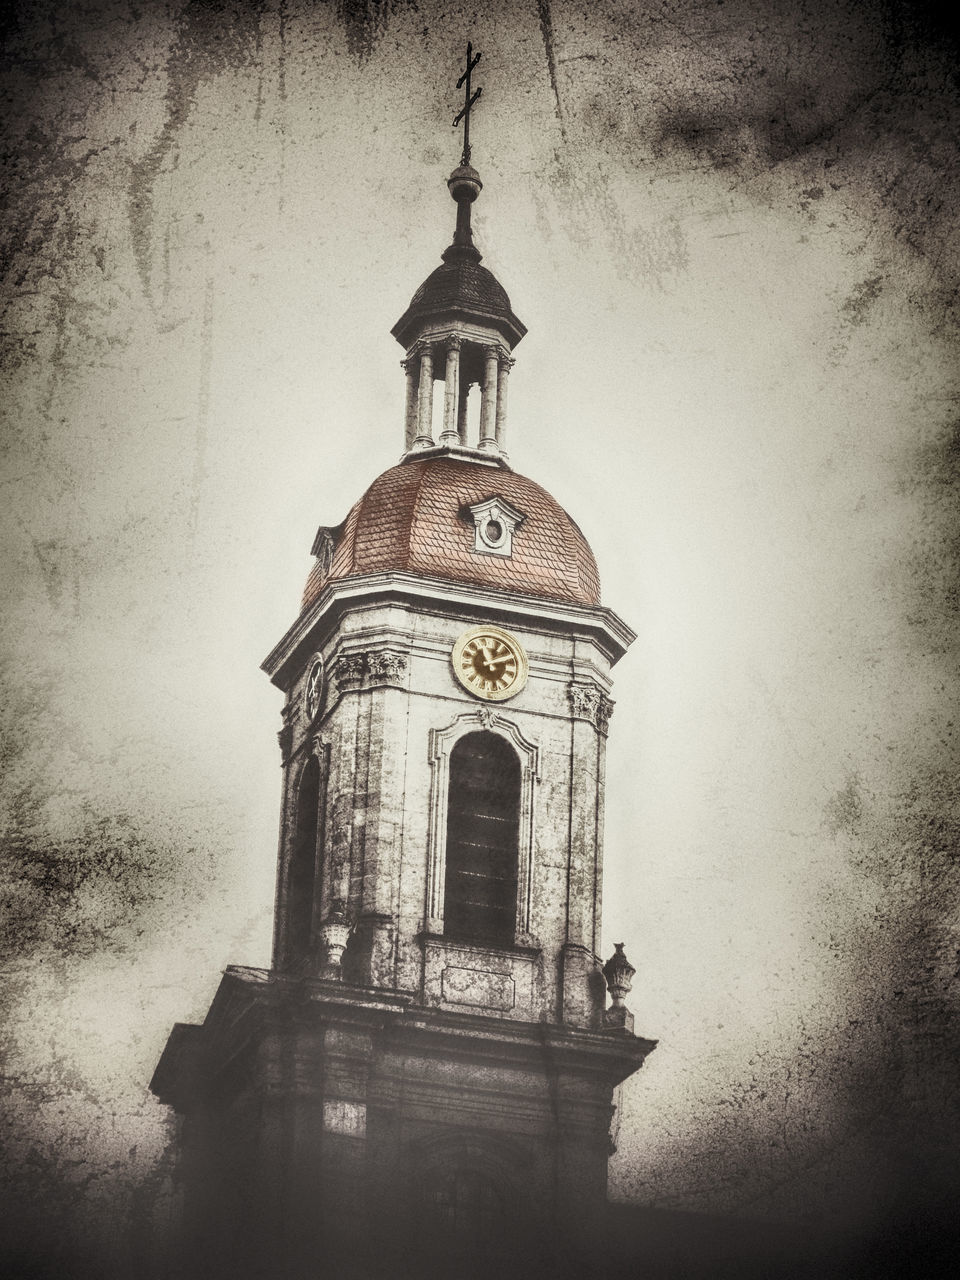 architecture, built structure, building exterior, sky, low angle view, tower, building, religion, no people, vignette, nature, belief, place of worship, auto post production filter, spirituality, the past, history, clock